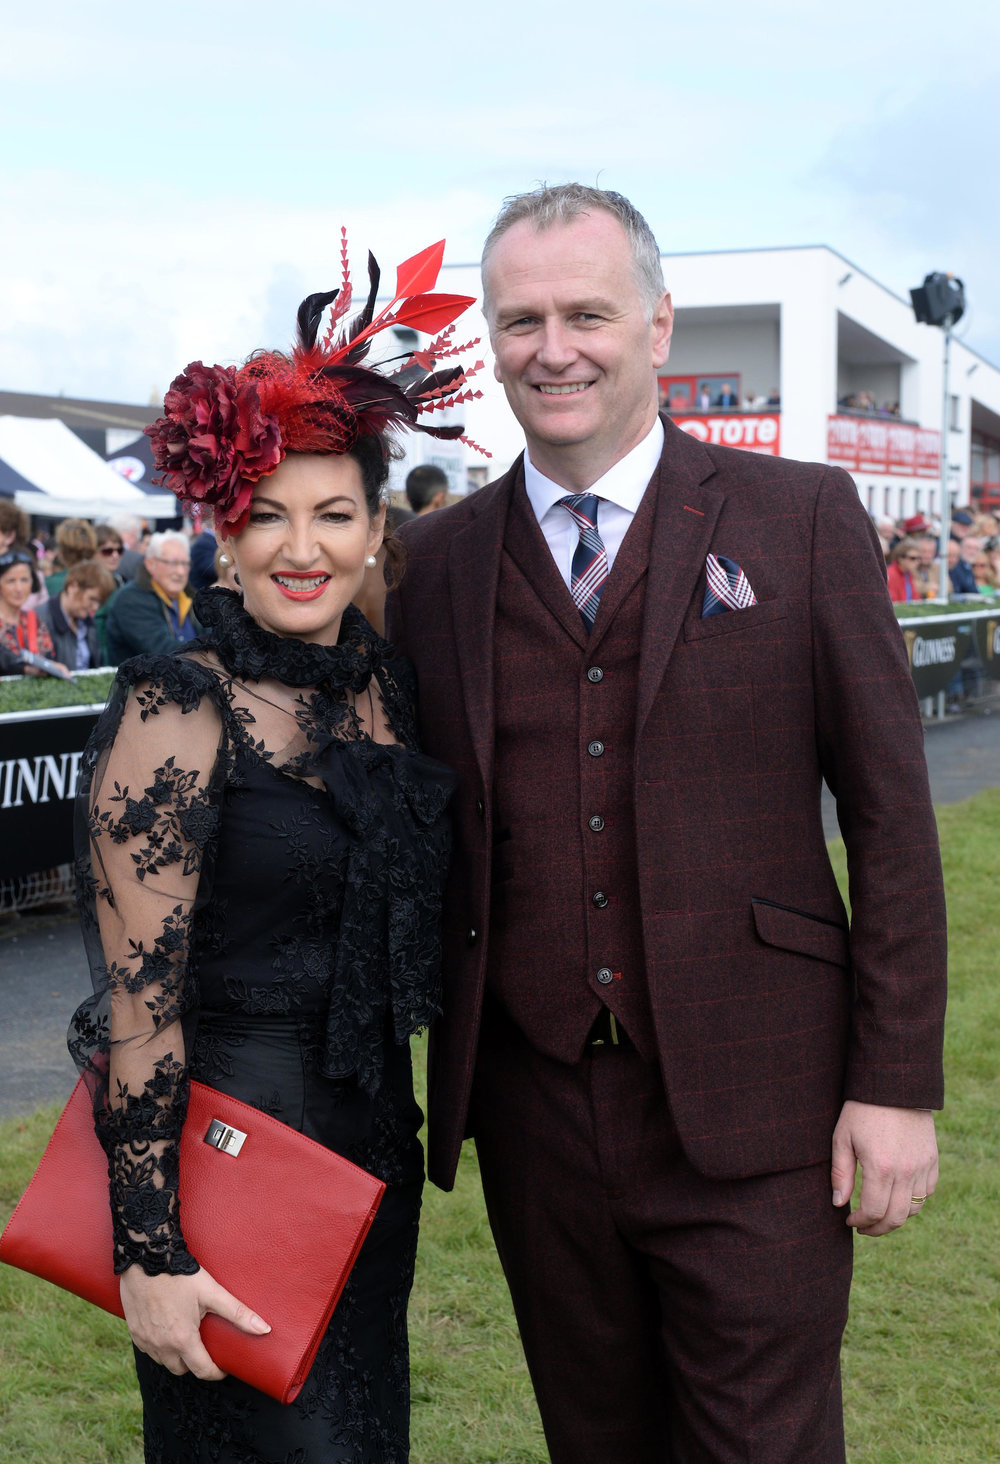 Listowel Races - We manage the McElligotts Honda Ladies Day at Listowel Races - the biggest Ladies Day event in Munster.